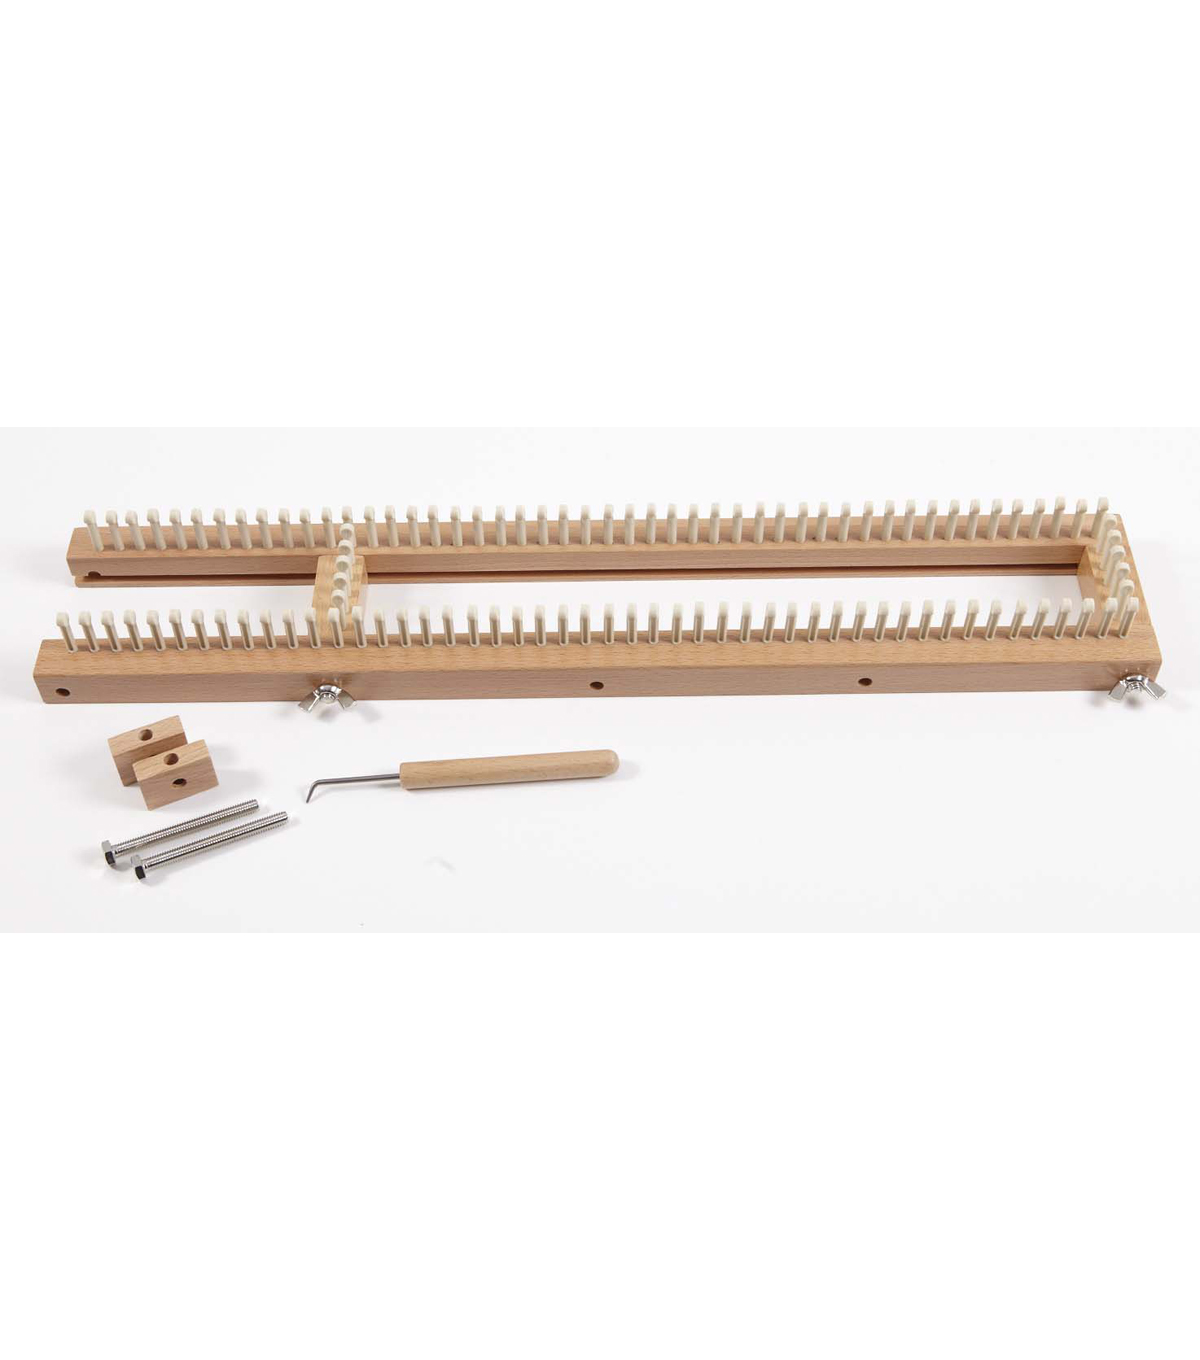 Knittng Board All-N-One Loom